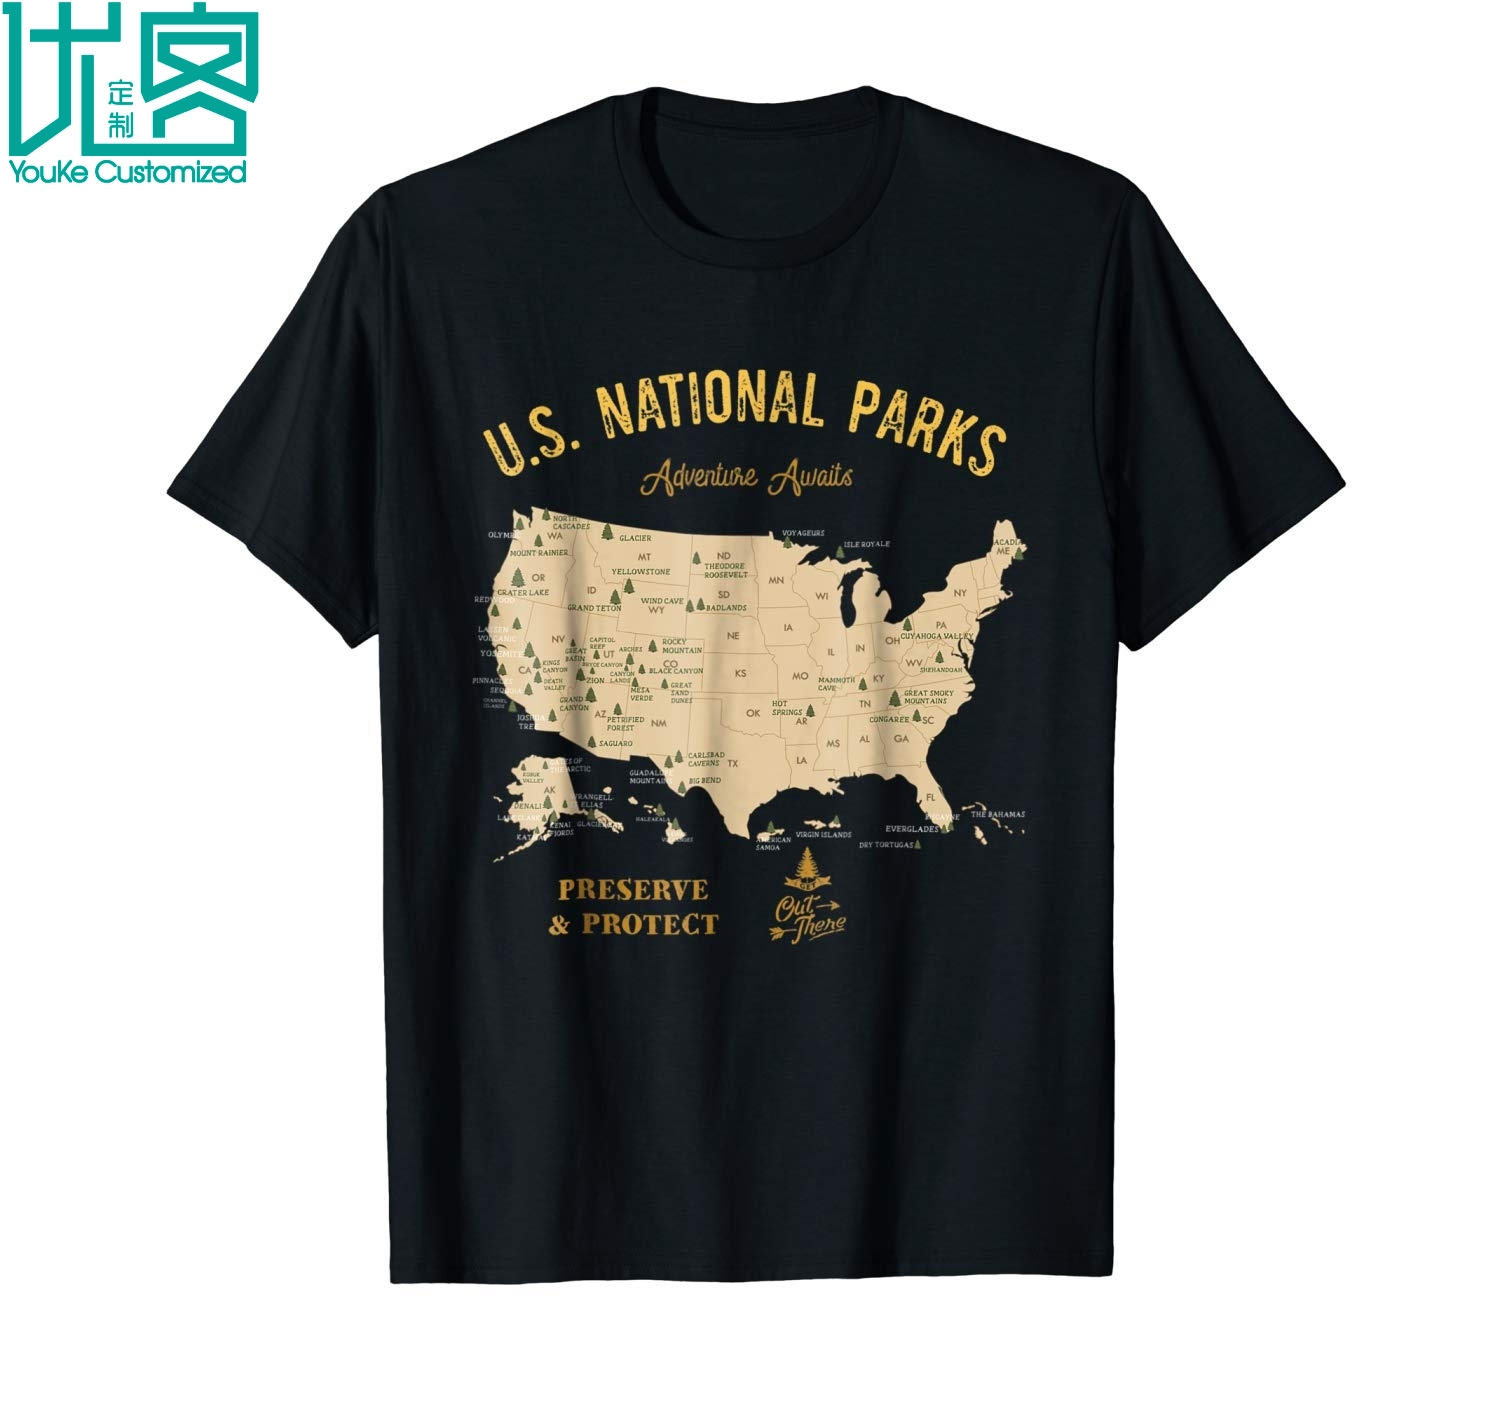 U S National Parks Map T Shirt Vintage Hiking Camping Shirt 2019 Summer Men's Short Sleeve T-Shirt image